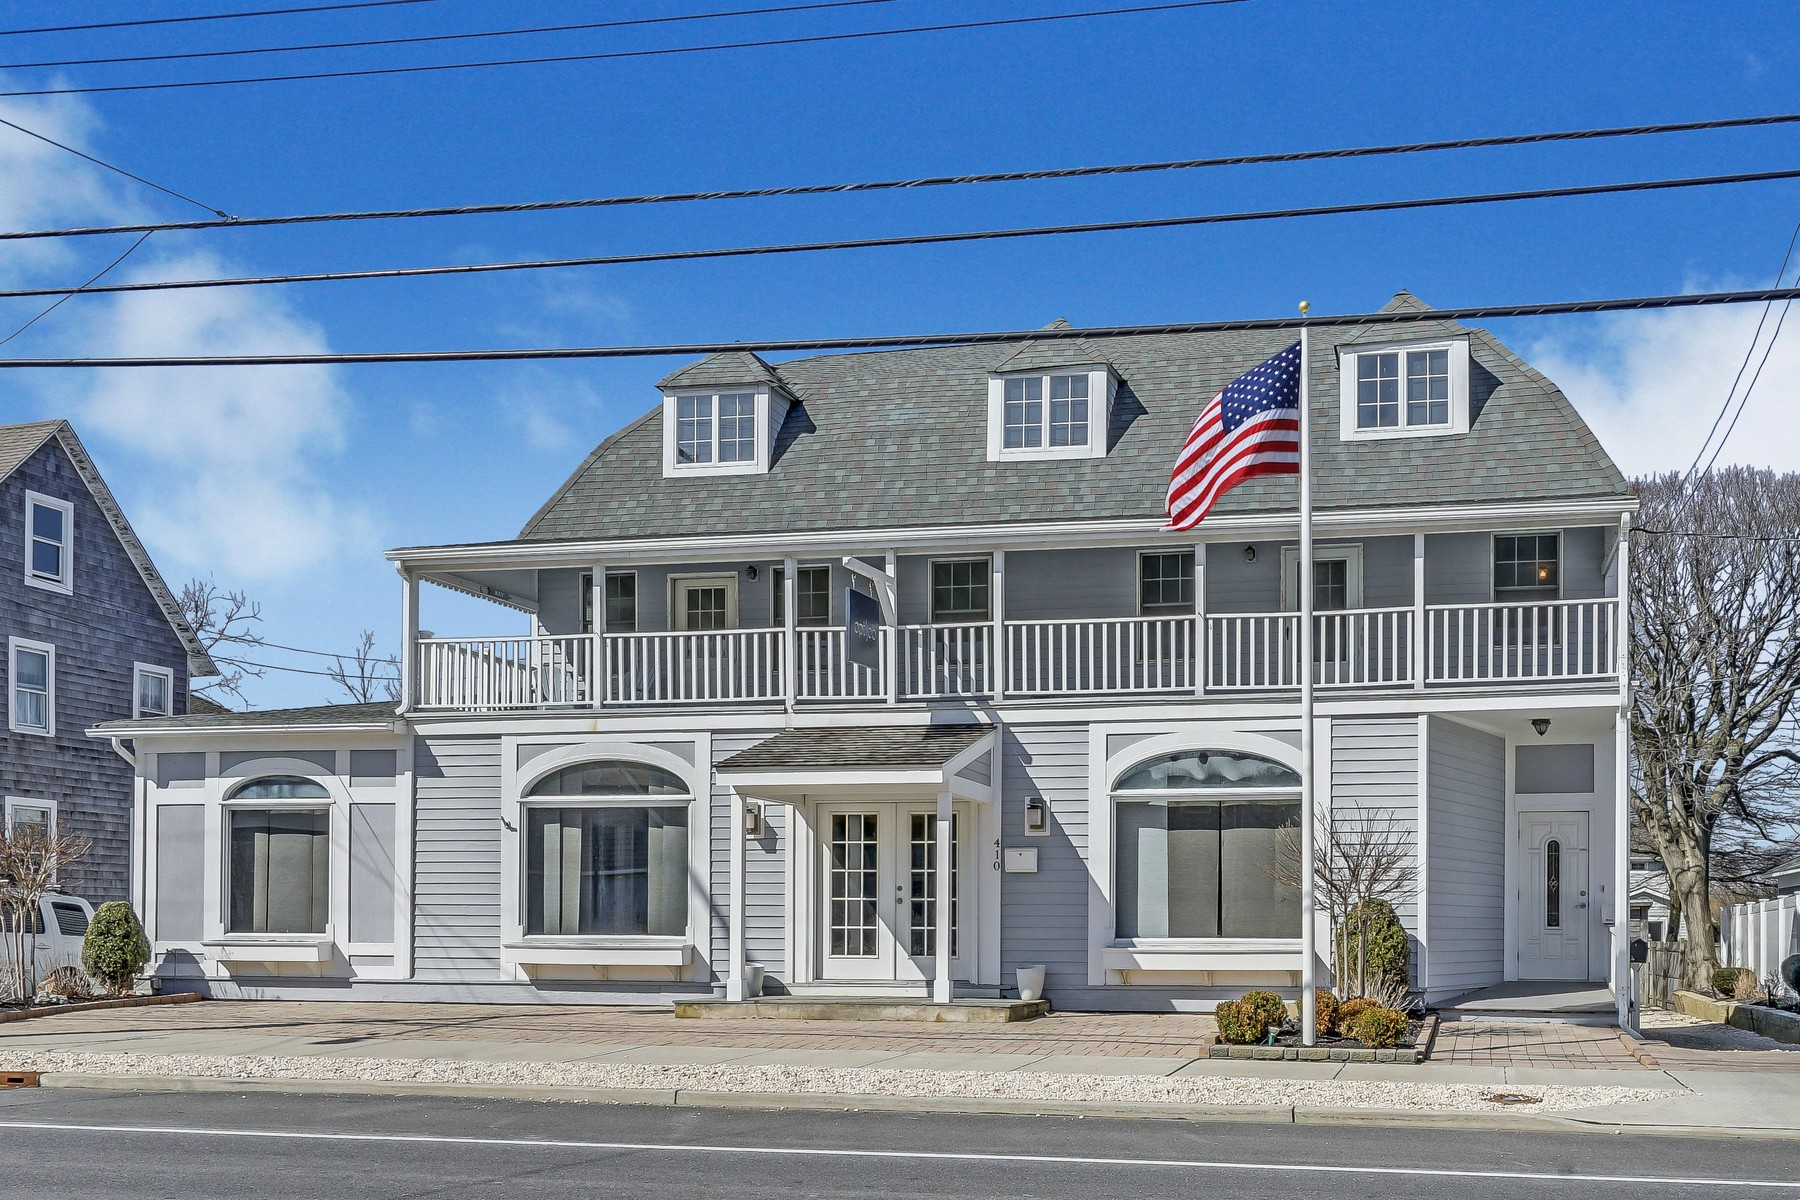 Multi-Family Home for Sale at Buy the Shore Lifestyle 410 Main Ave, Bay Head, New Jersey 08742 United States